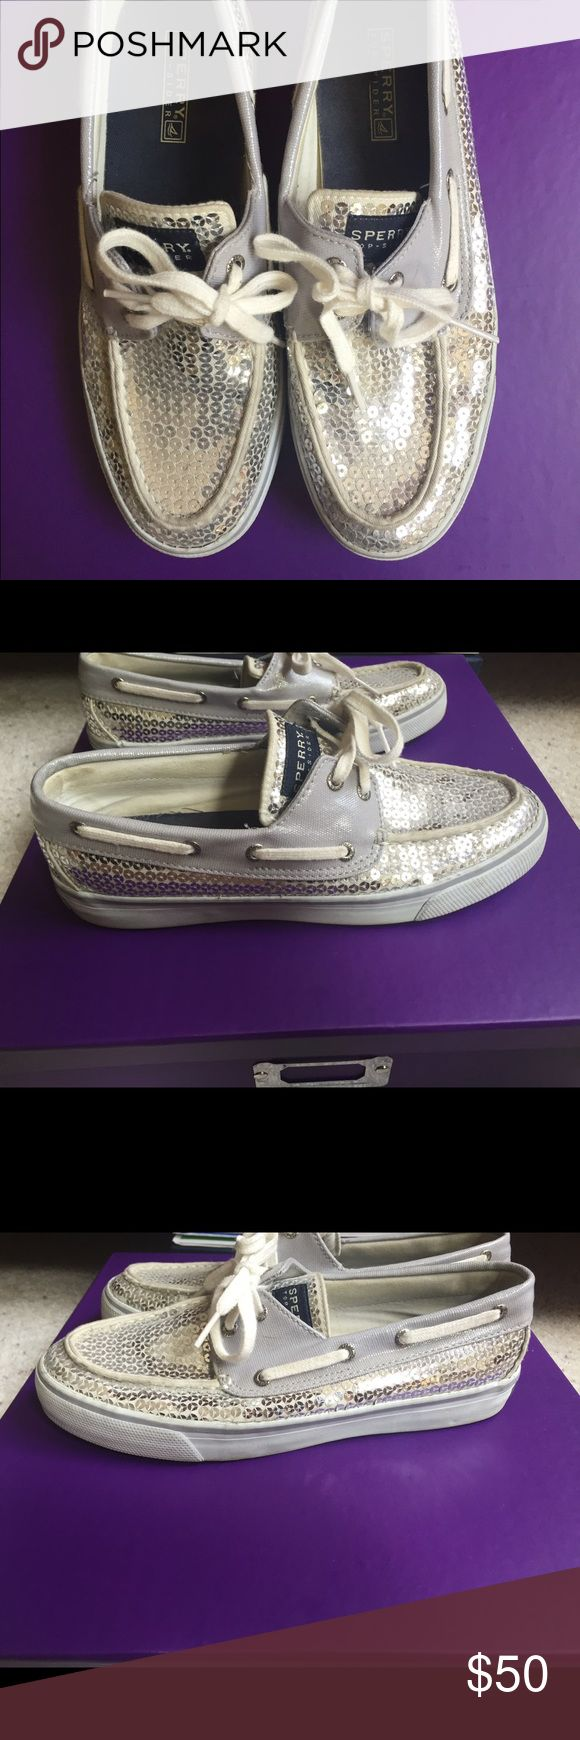 Sperry White Sperry's with silver sequins. Very clean. Like new! Sperry Shoes